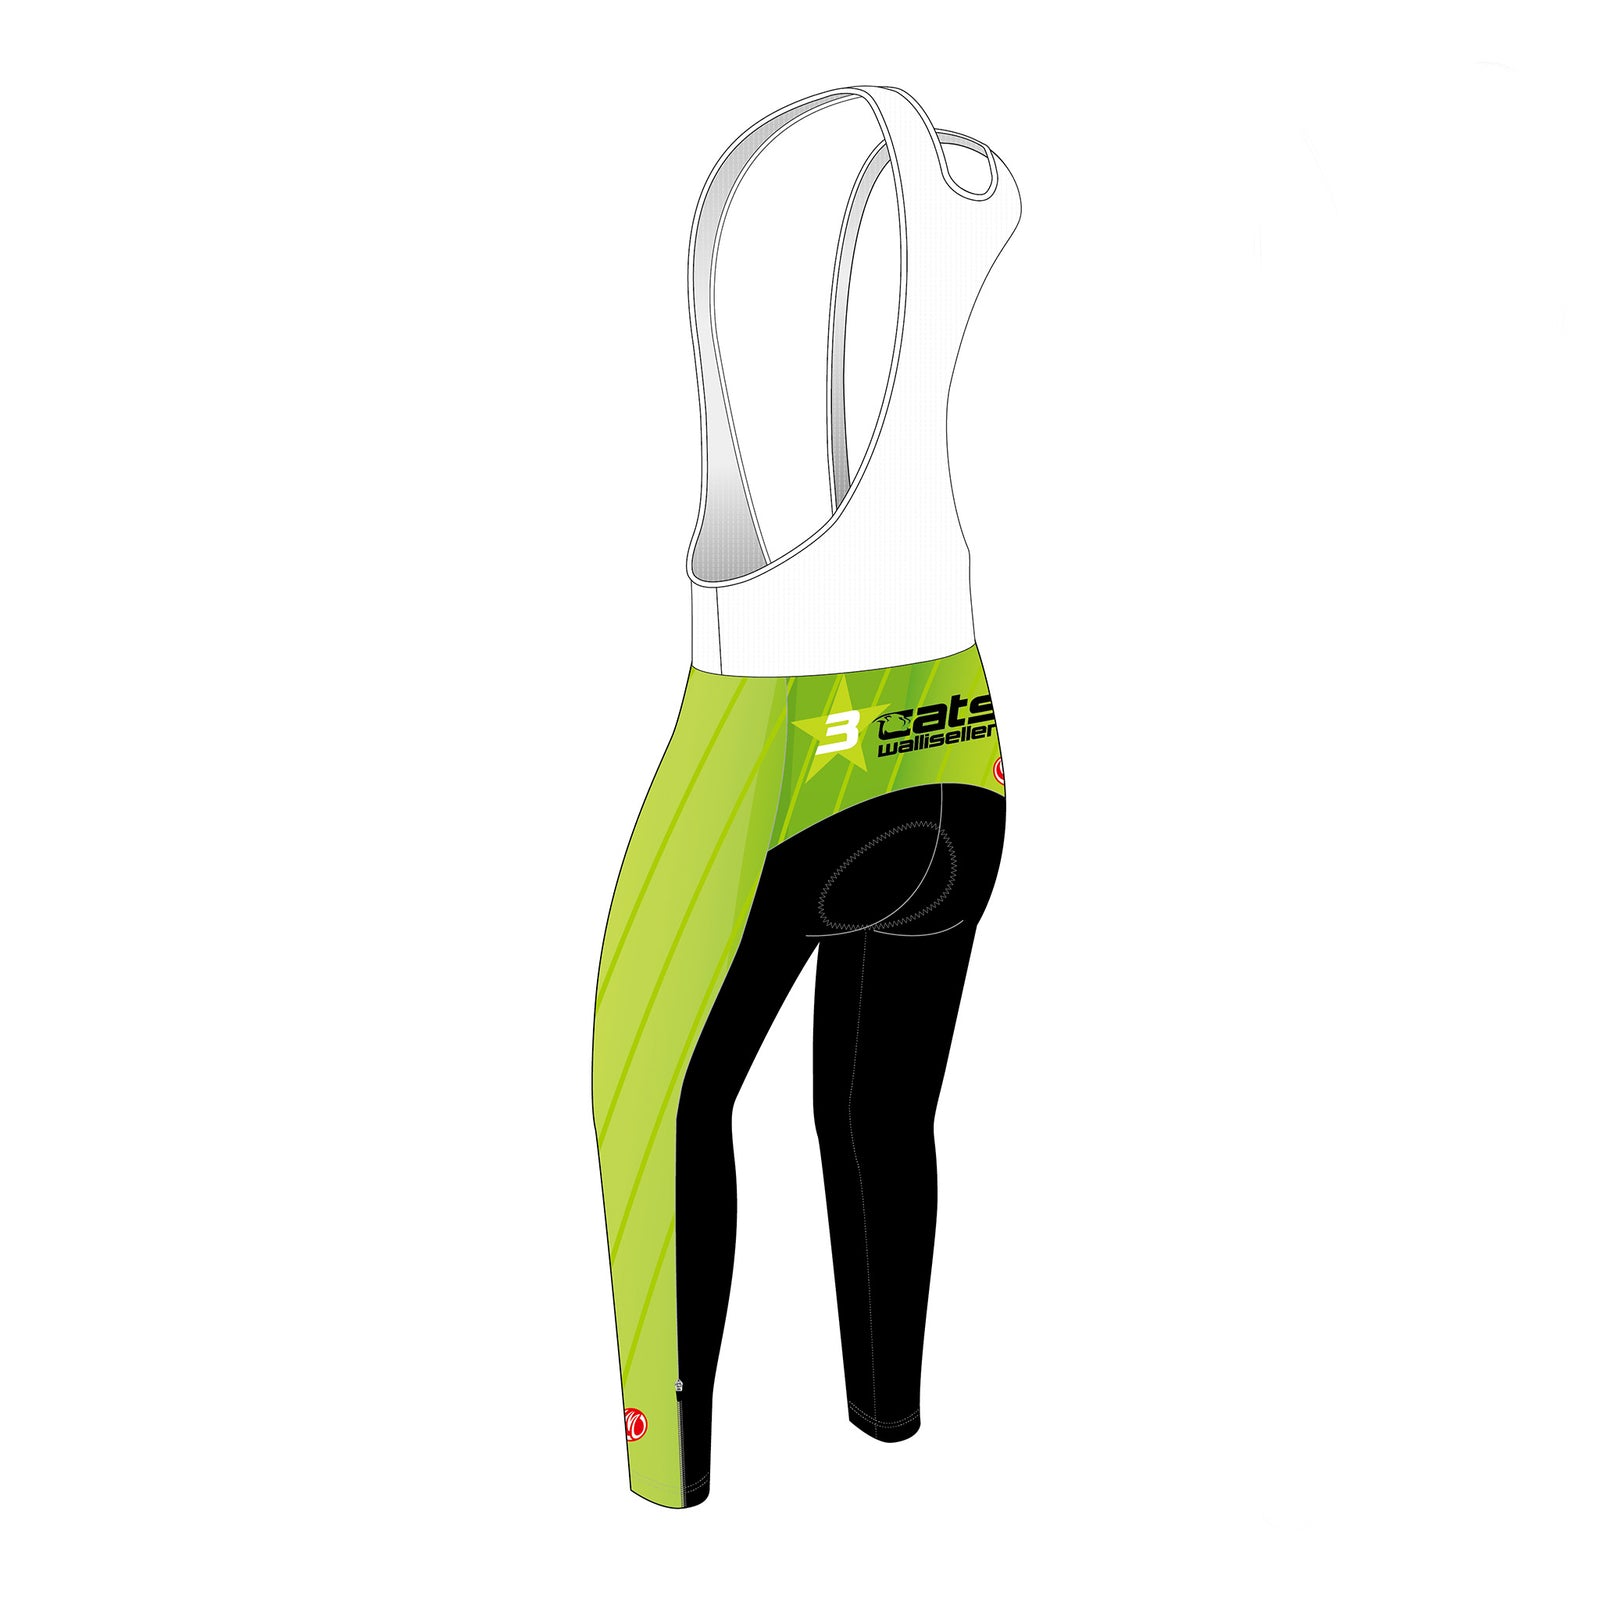 3star cats GOLD Thermal Cyling Bib Tights